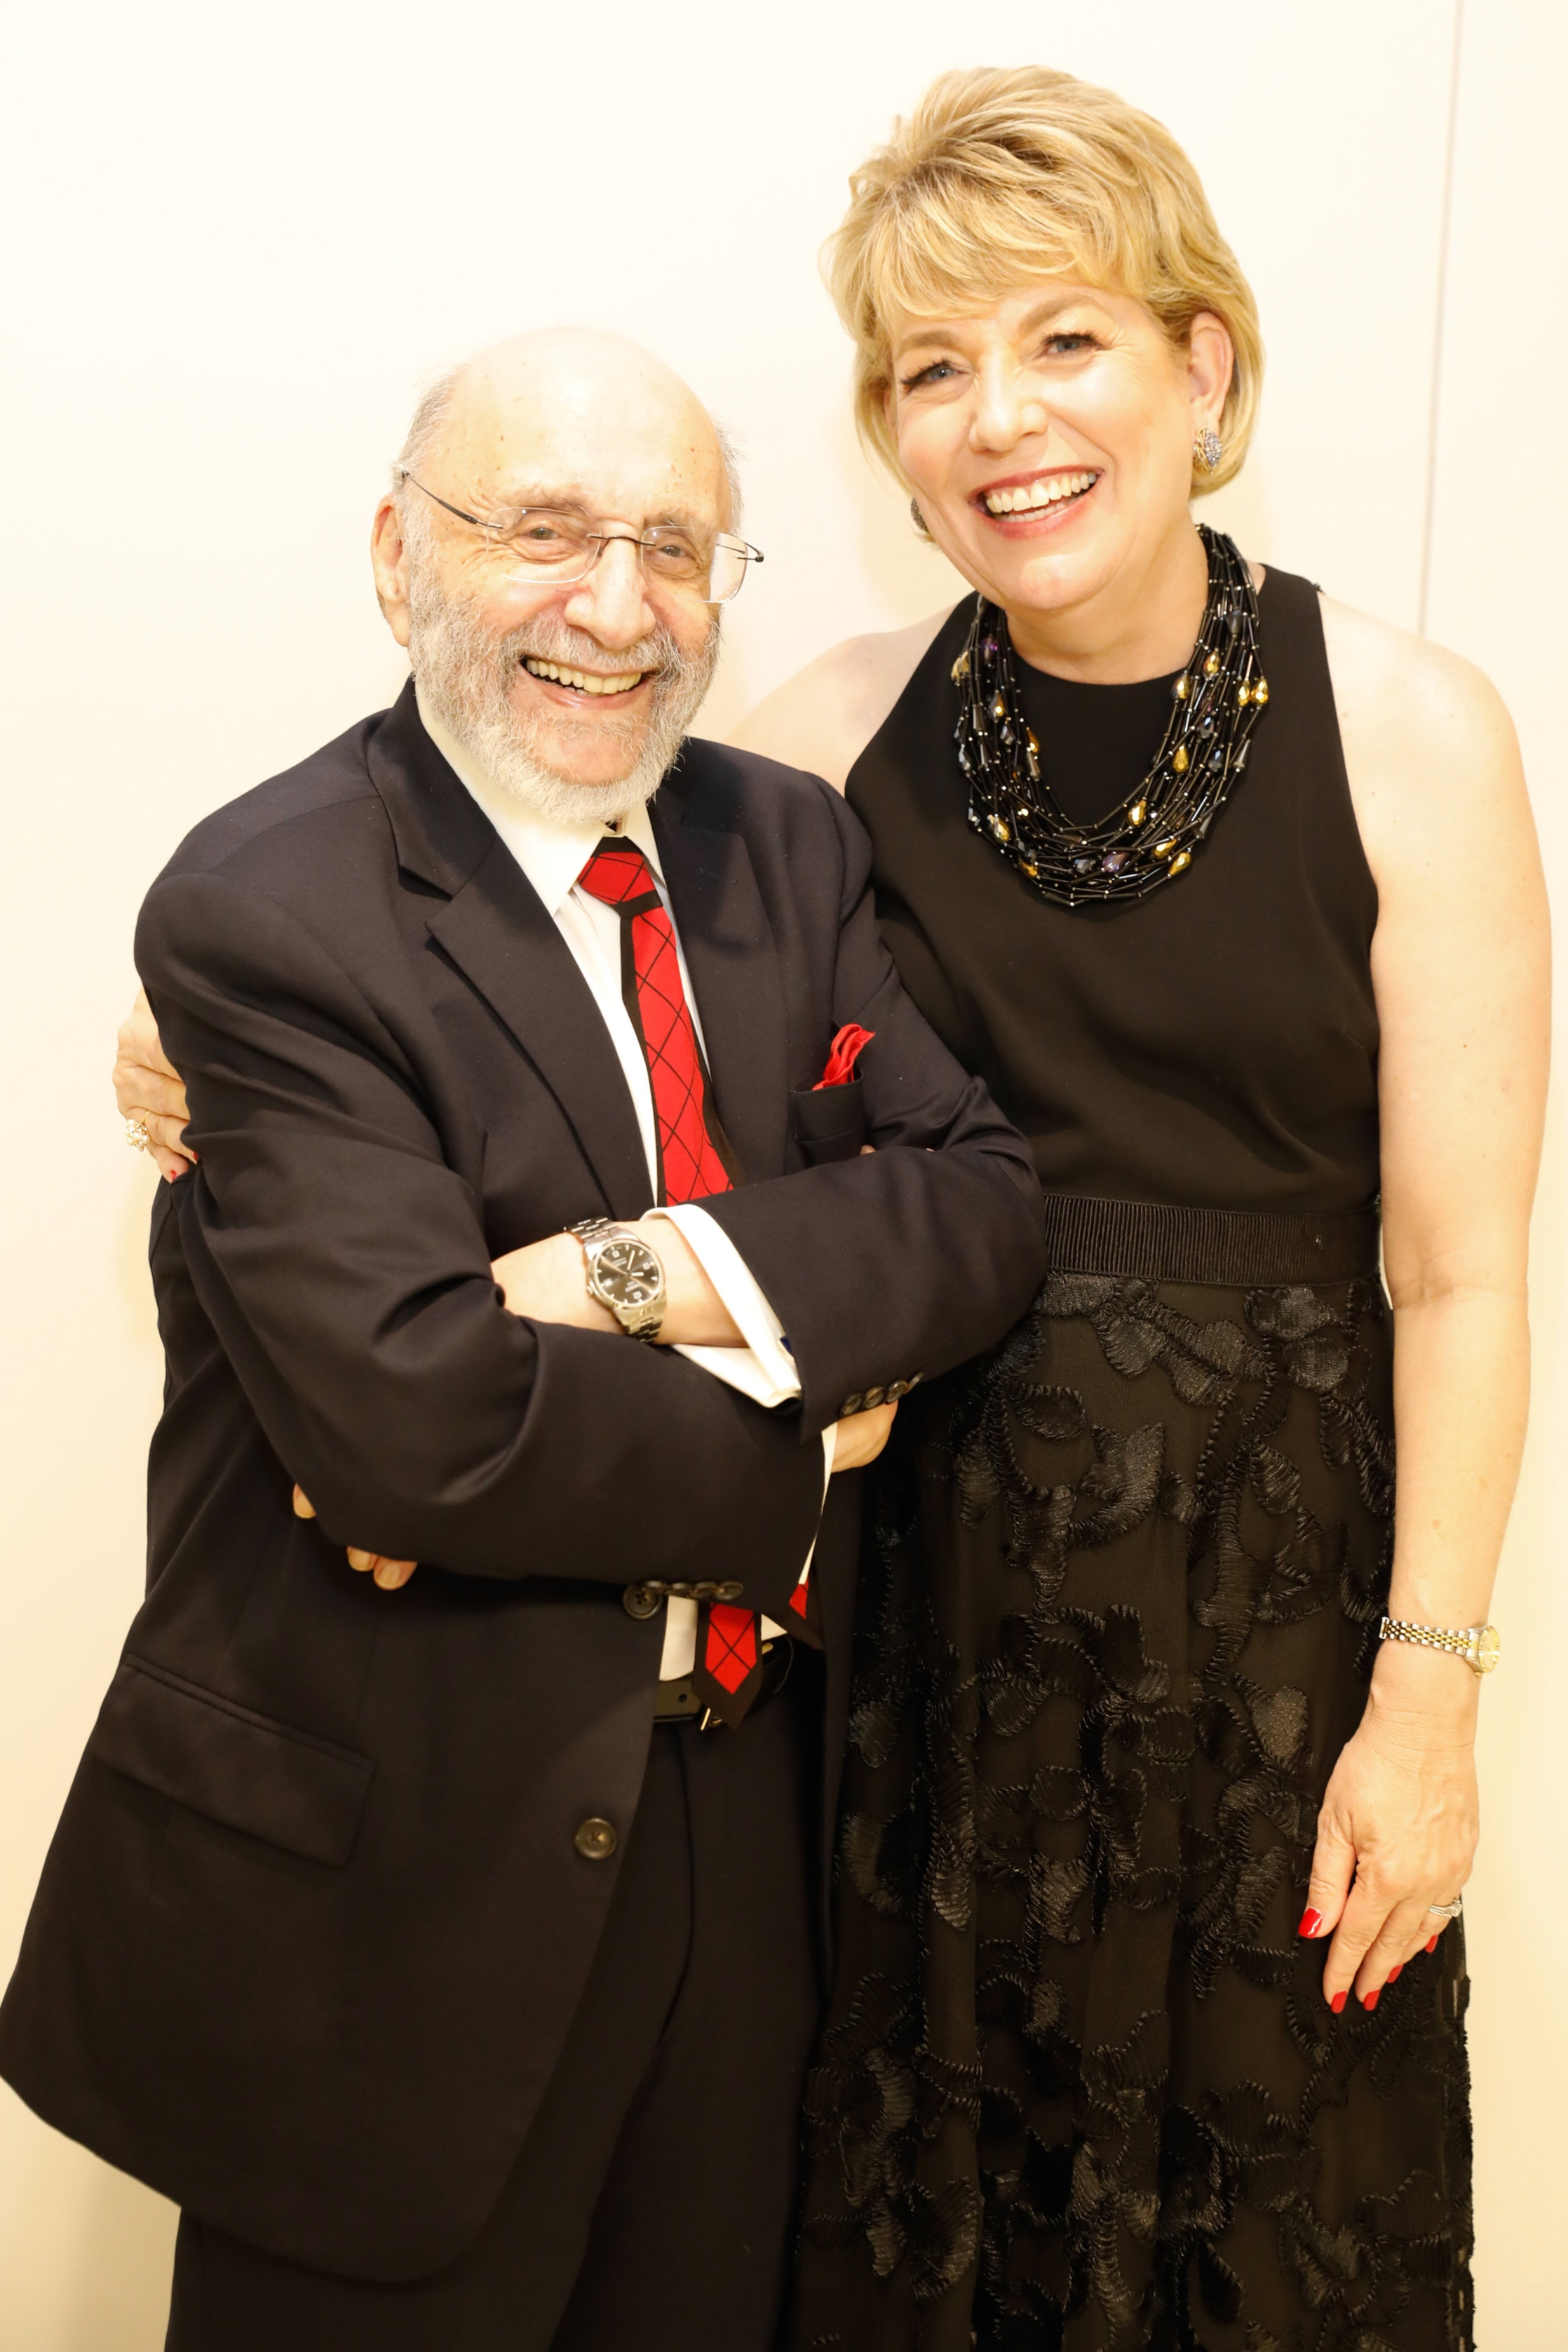 Samuel Bak and HMH CEO Dr. Kelly J. Zúñiga attend the HMH First Look Celebration on 15 June 2019; Photographed by Priscilla Dickson